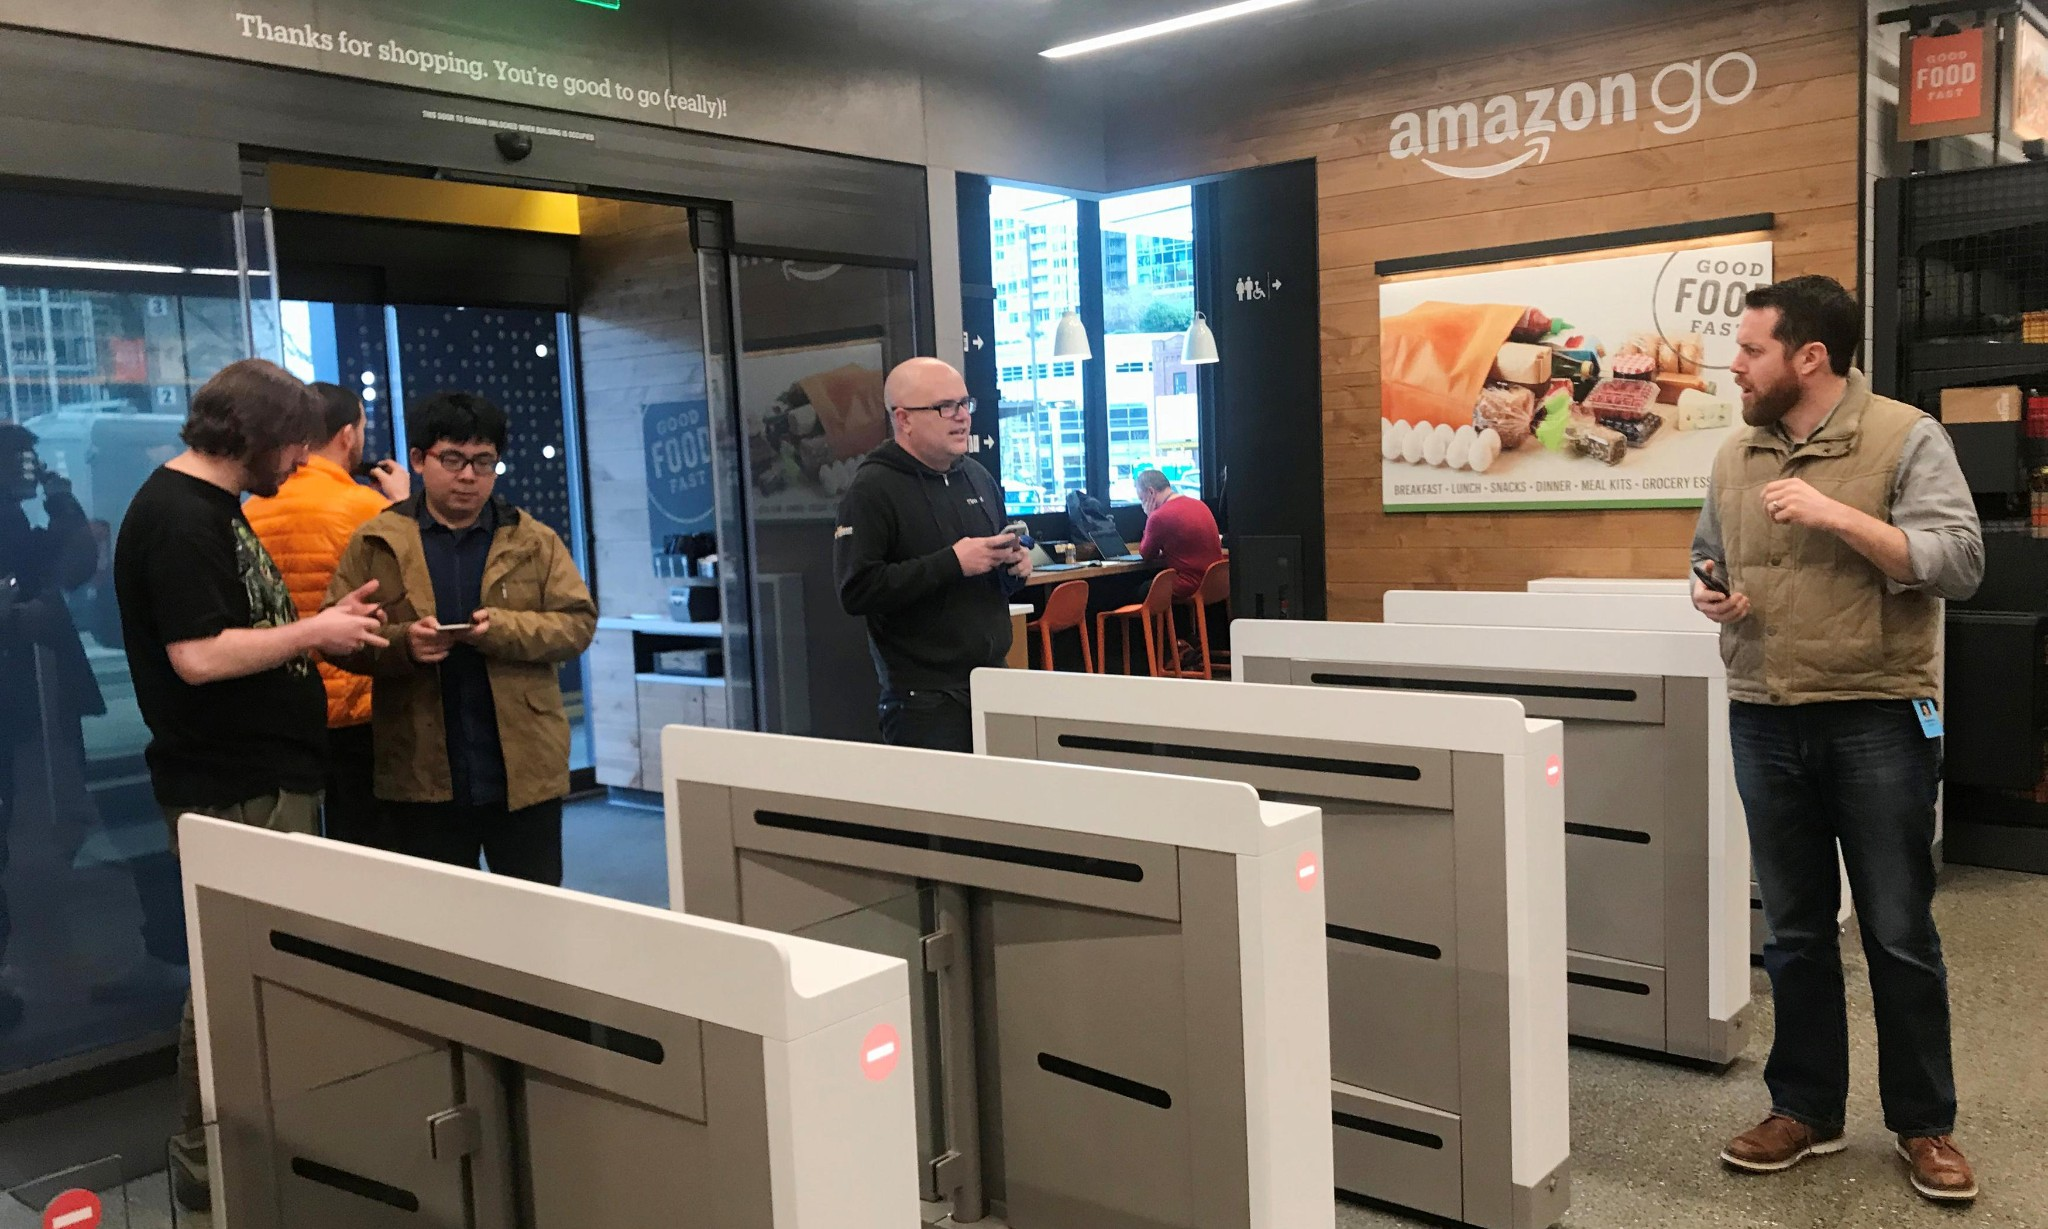 Amazon's first automated store opens to public on Monday